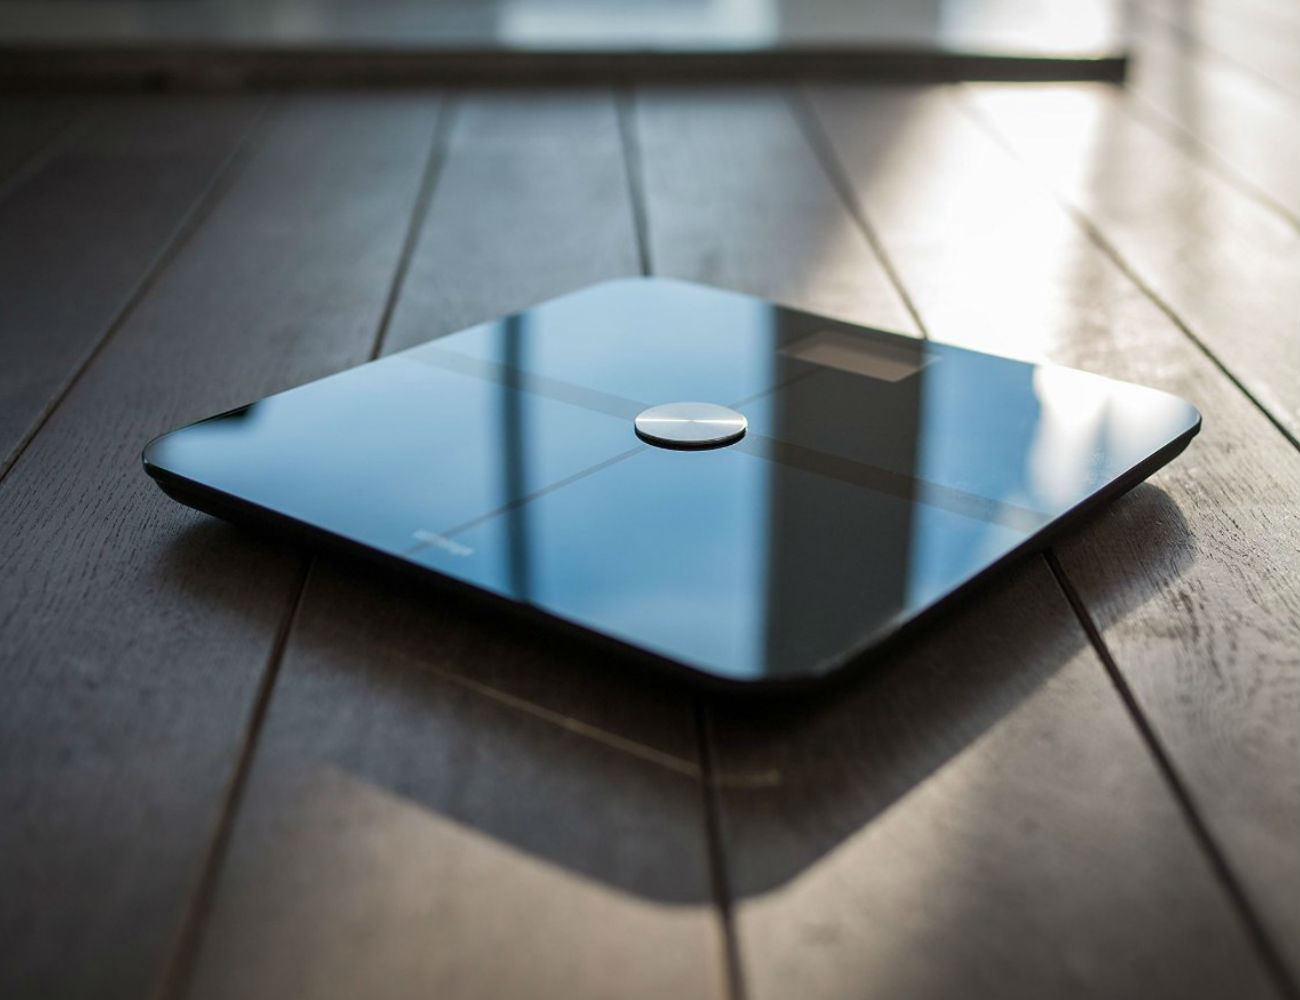 Withings+WS-50+Smart+Body+Analyzer